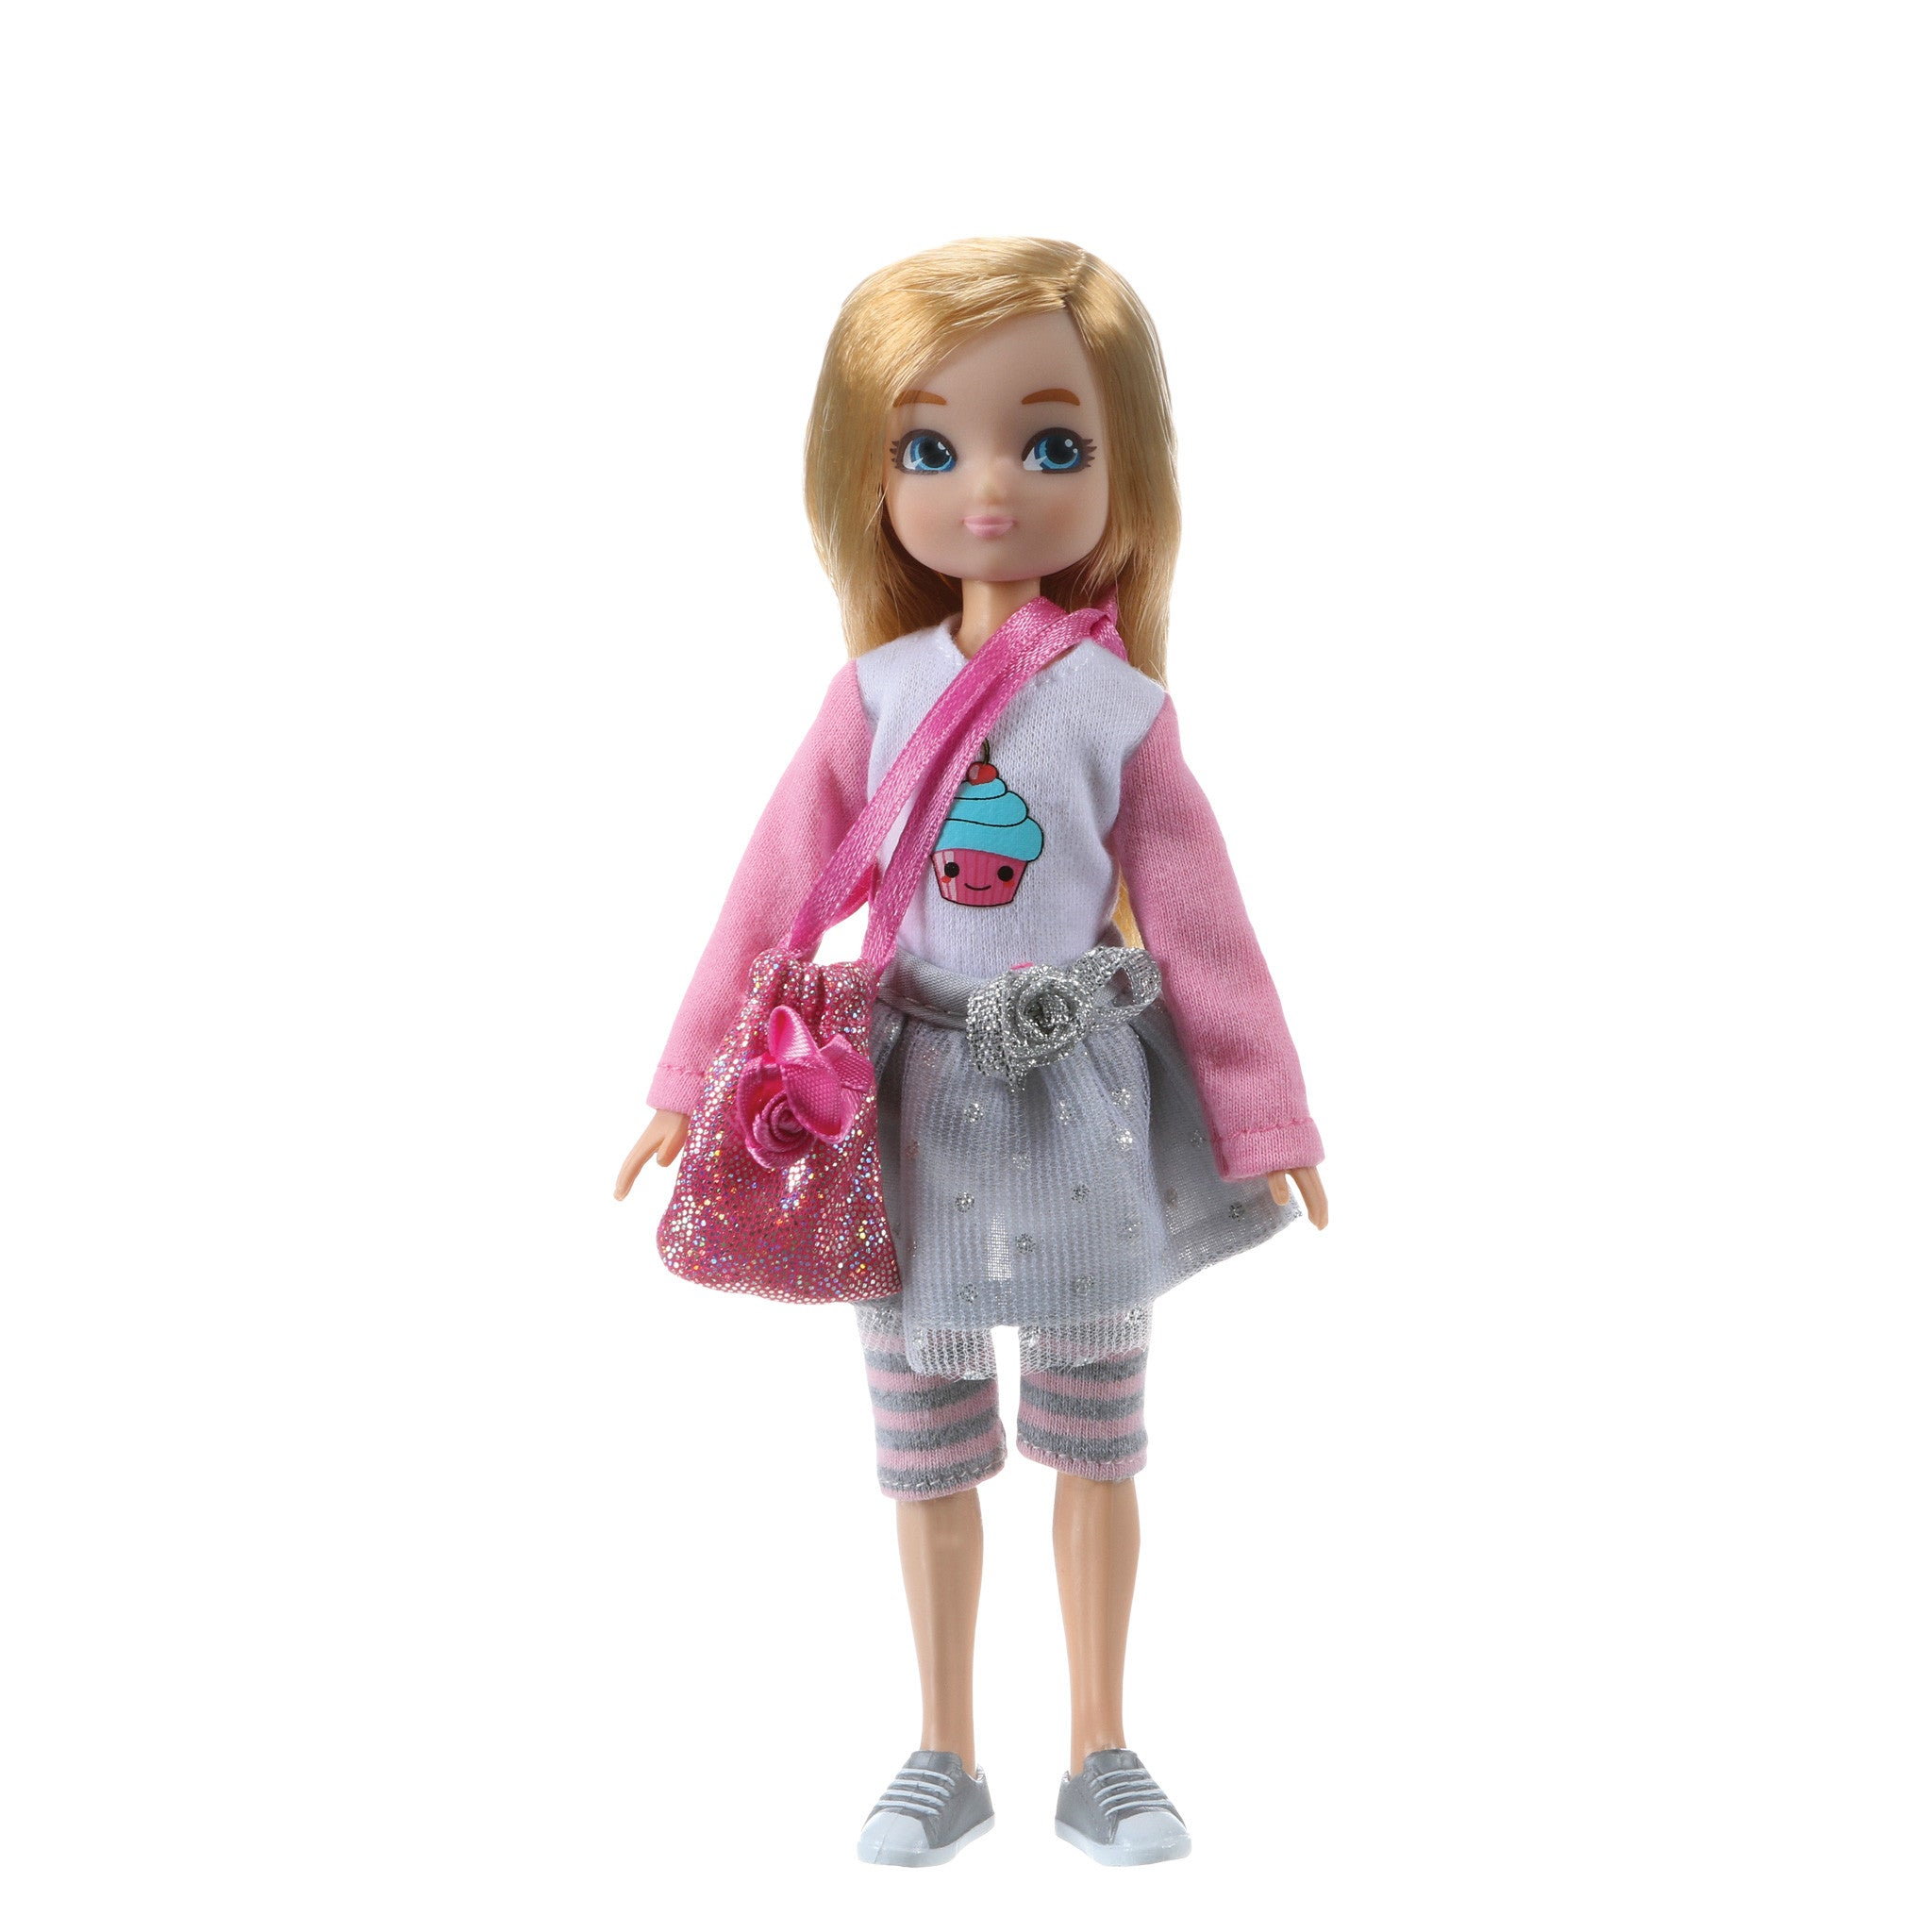 Birthday Girl Sophia - Lottie Doll, unboxed, standing